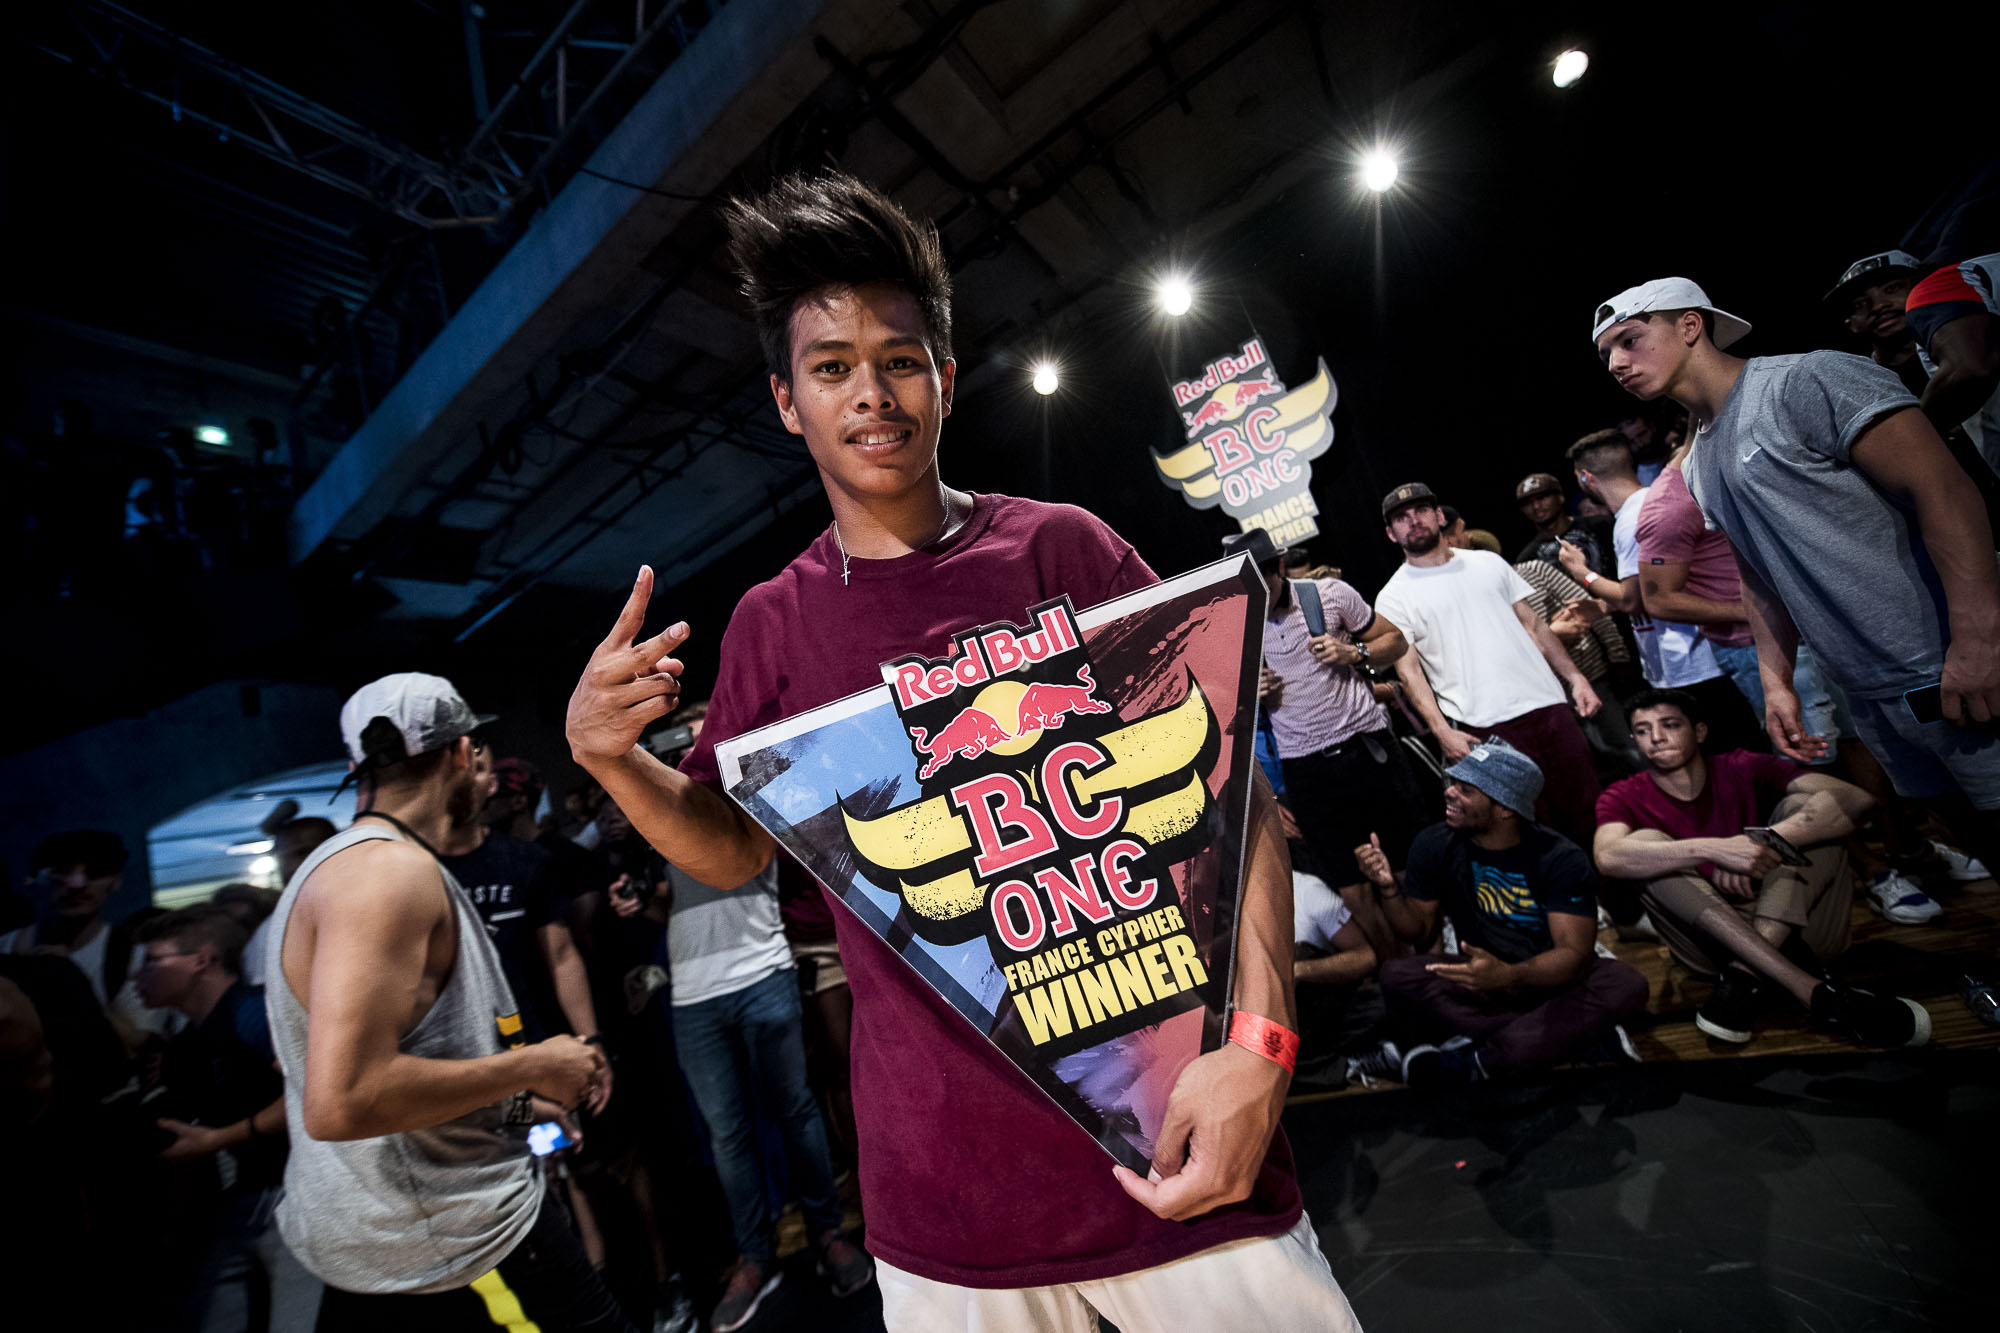 Will winner of the Red Bull Bc One France Cypher posing with the trophee at the WIP Villette during the Red Bull BC One France Cypher Final in Paris, France on July 10th 2016.